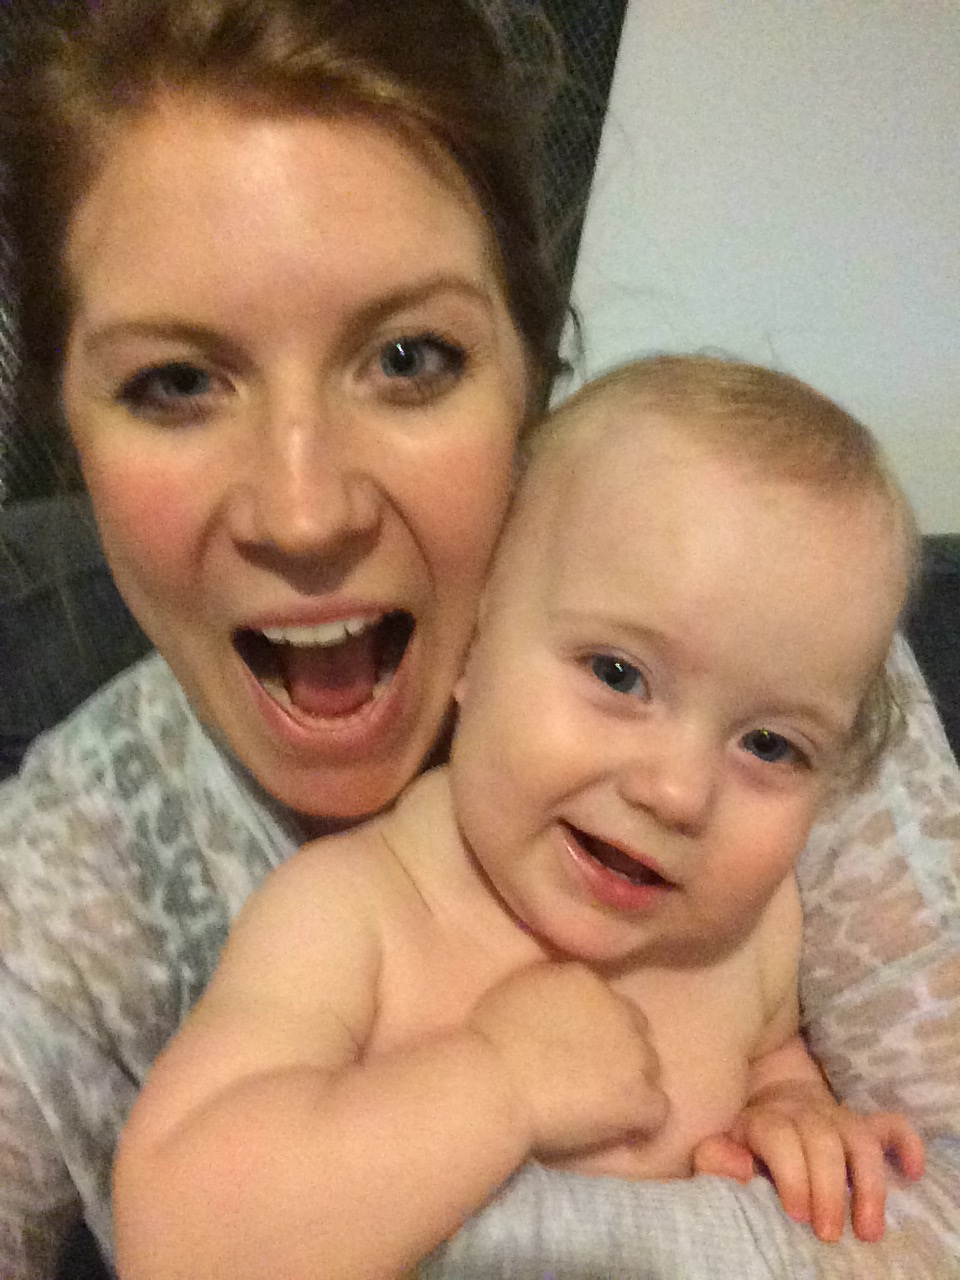 The Knott Bump & Us: Cystic Hygroma: Our Story So Far